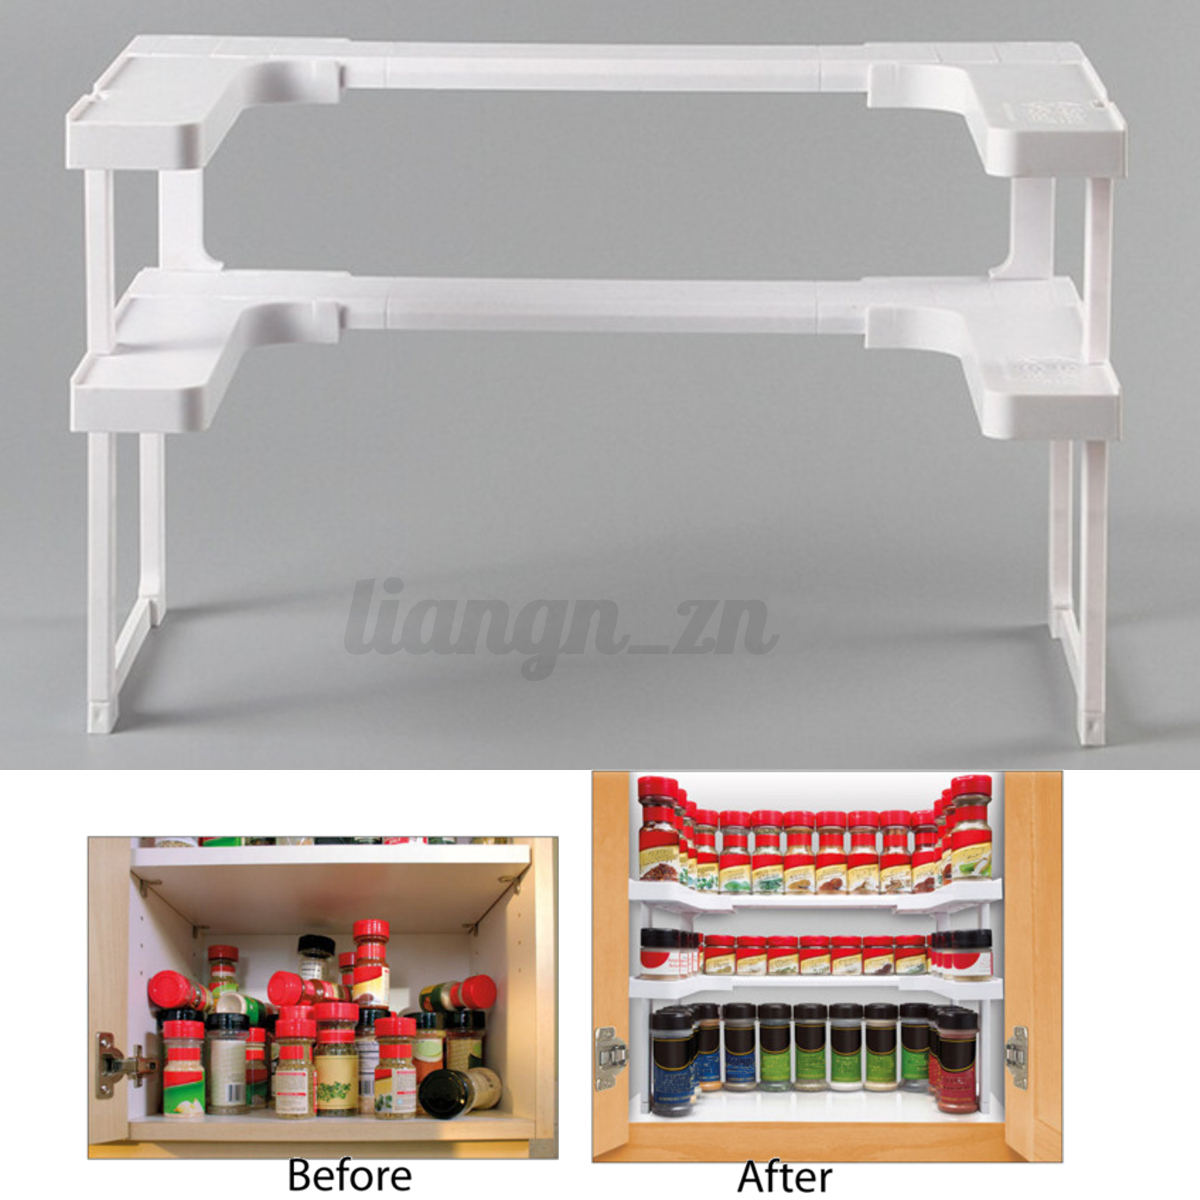 tag re pices rangement organisateur support bouteille cuisine caf placard ebay. Black Bedroom Furniture Sets. Home Design Ideas